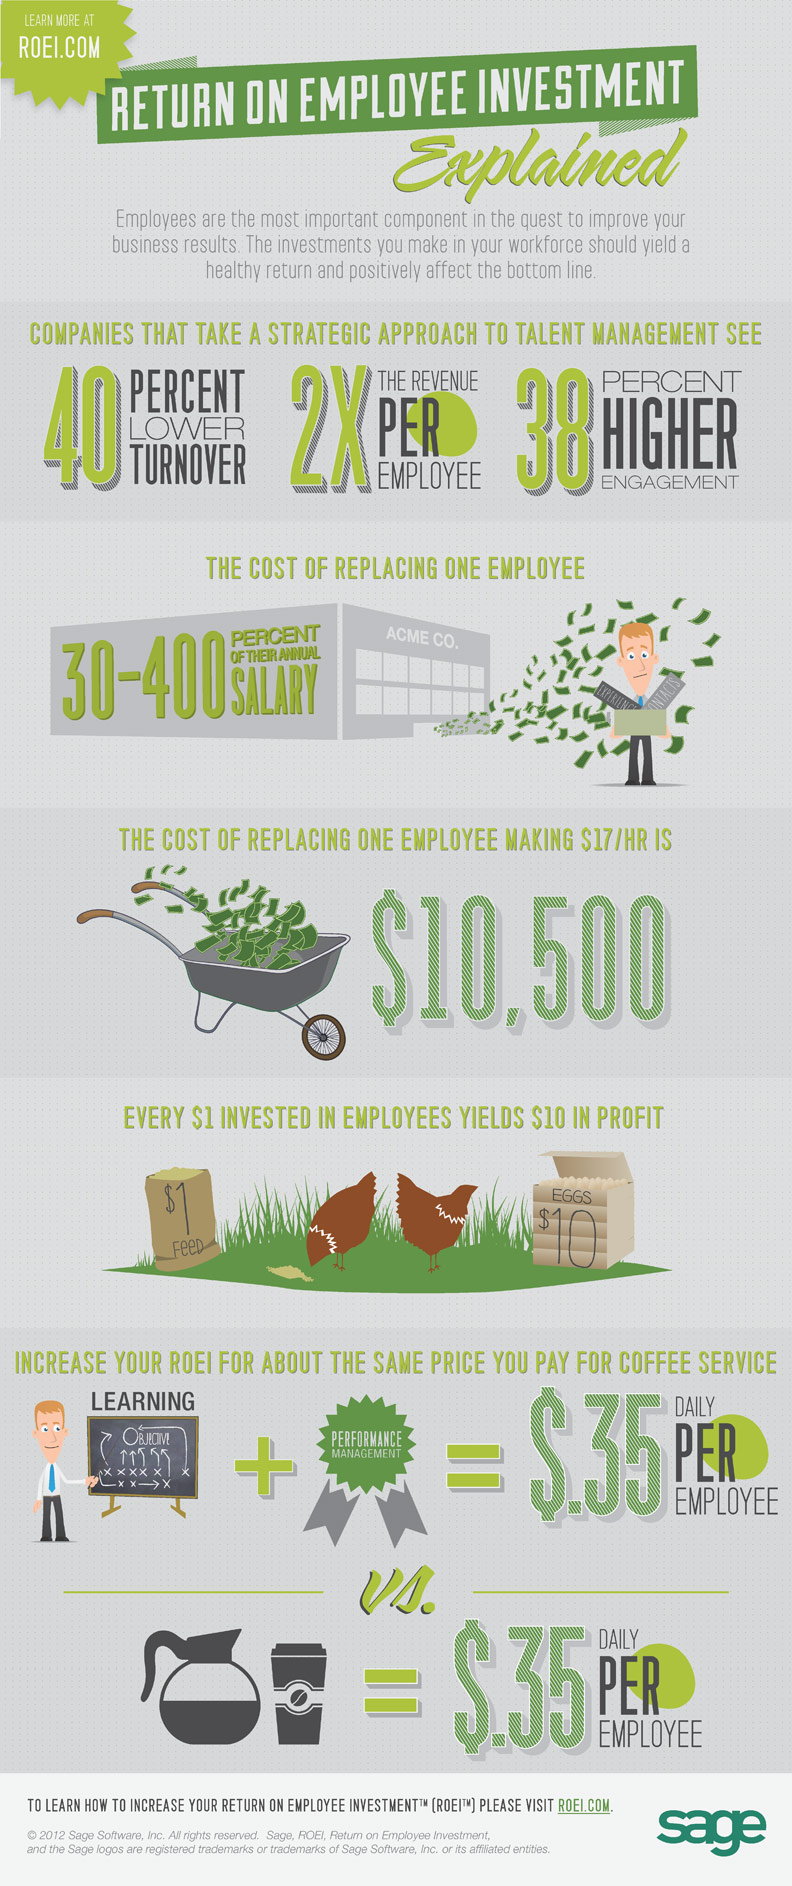 Return-On-Employee-Investment-infographic